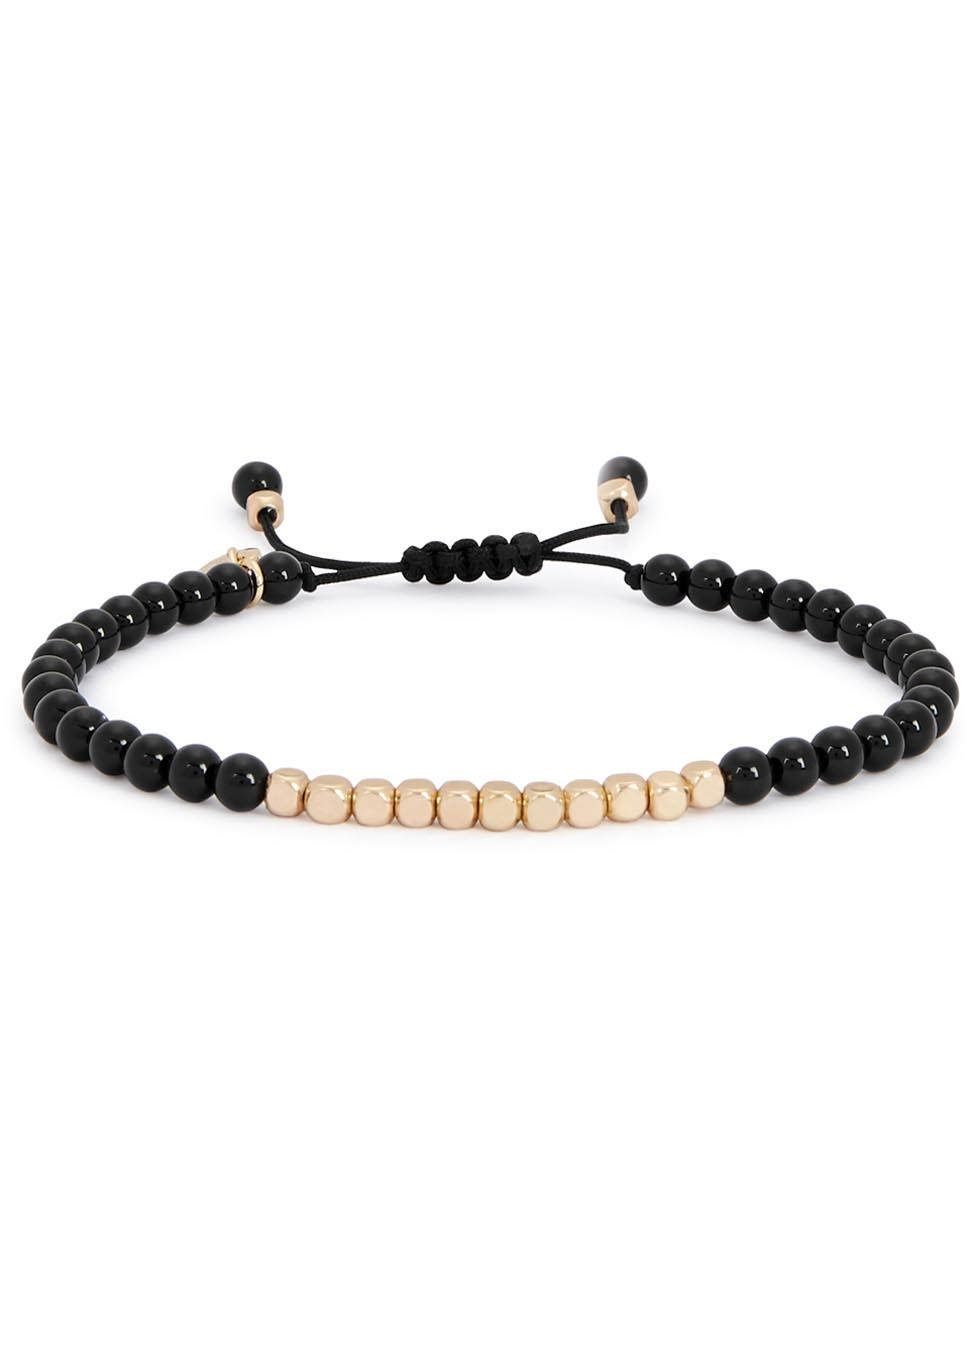 Marylebone Black Agate Beaded Bracelet - predominant colour: black; occasions: casual, creative work; size: standard; material: fabric/cotton; finish: plain; embellishment: beading; style: bead; season: a/w 2016; wardrobe: highlight